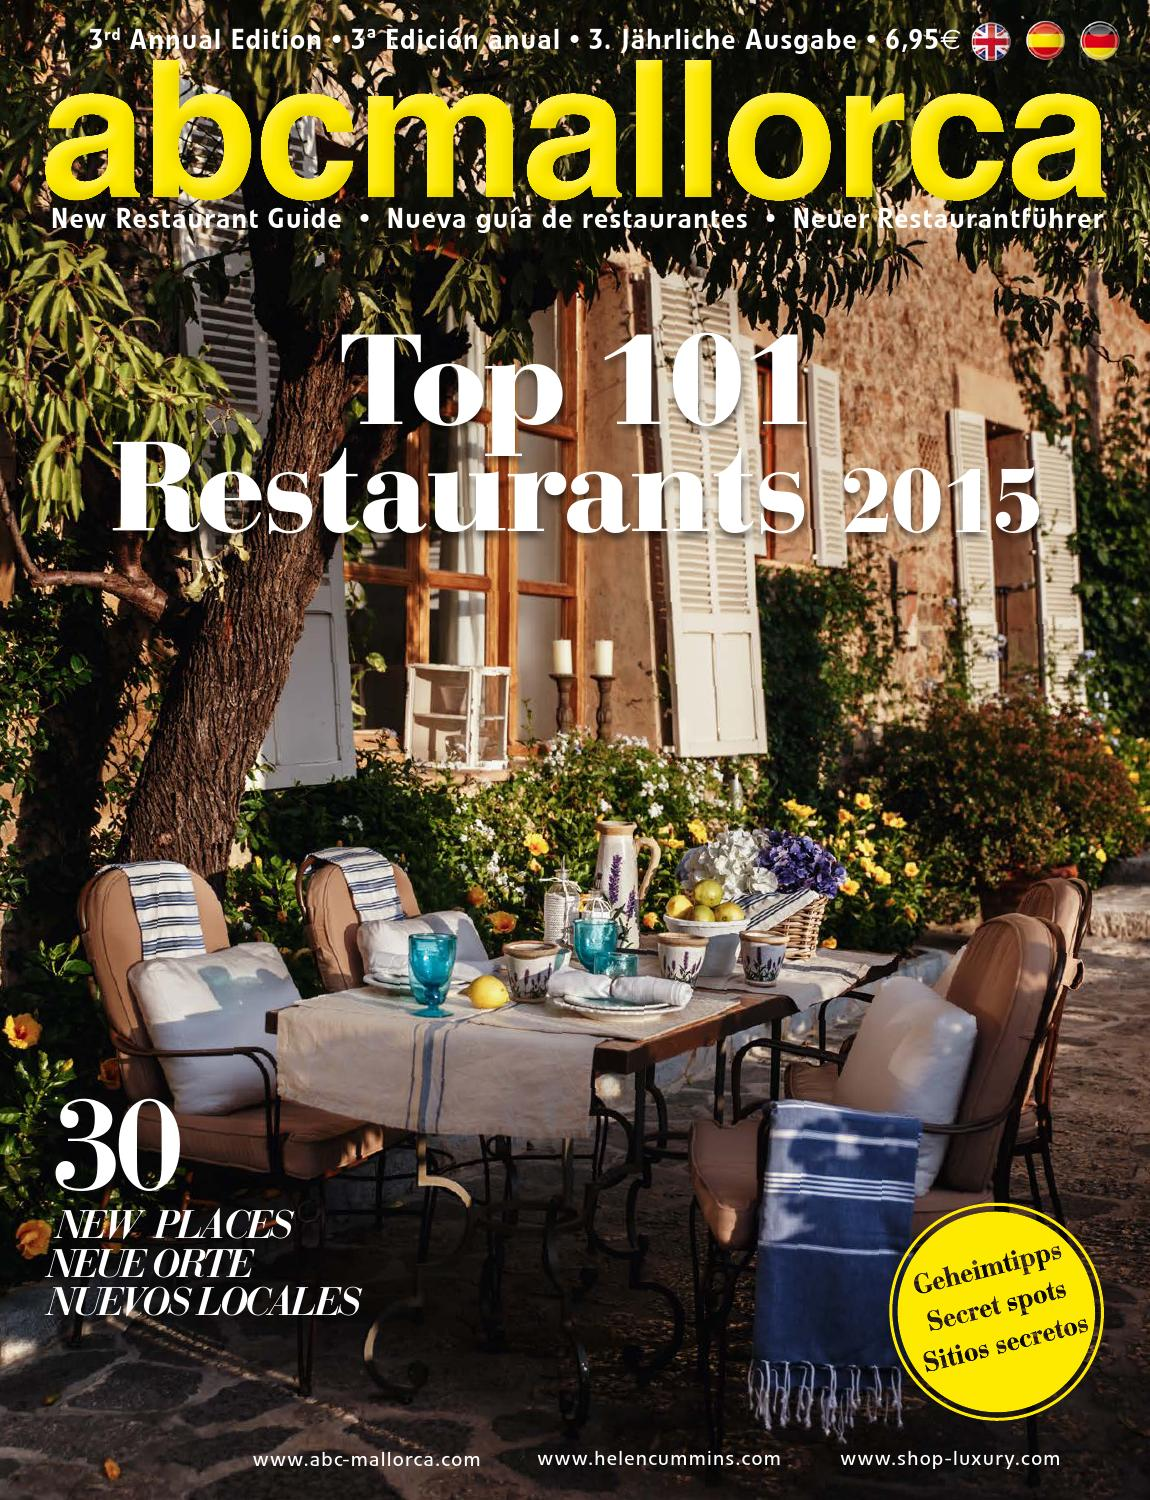 80th Abcmallorca 101 Top Restaurants 2015 By Abc Knowledge Company  # Muebles Wendy Manta